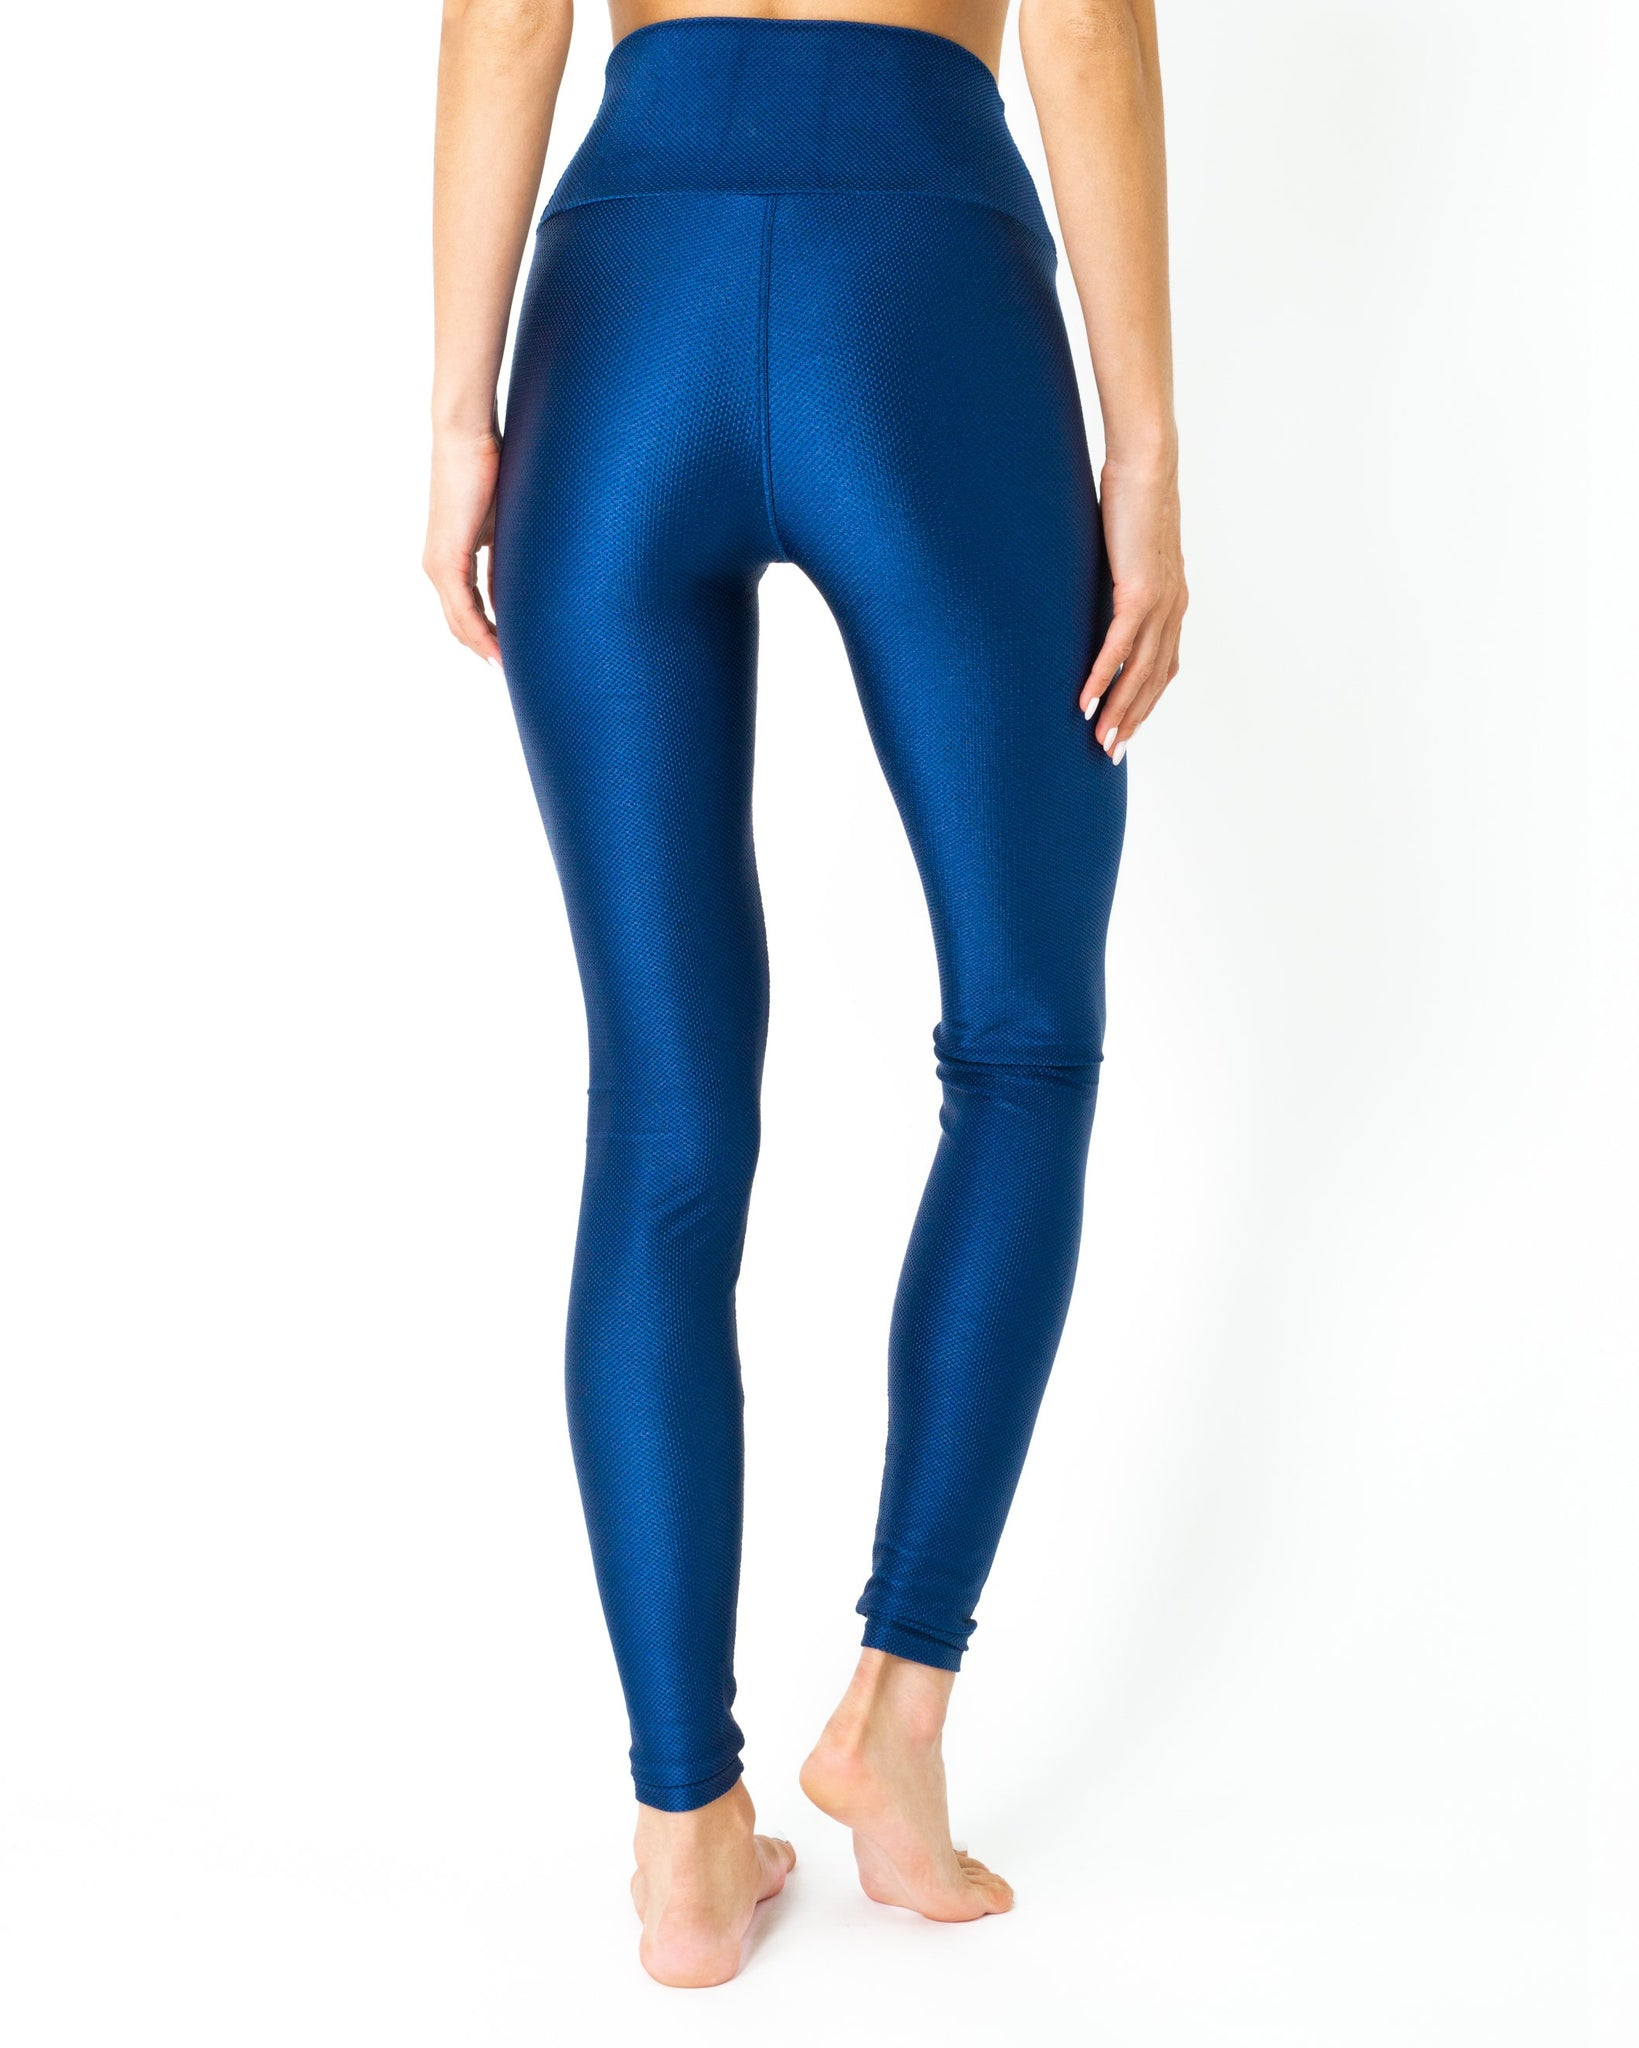 Nova Glam Body Sculpting Leggings - Navy Blue